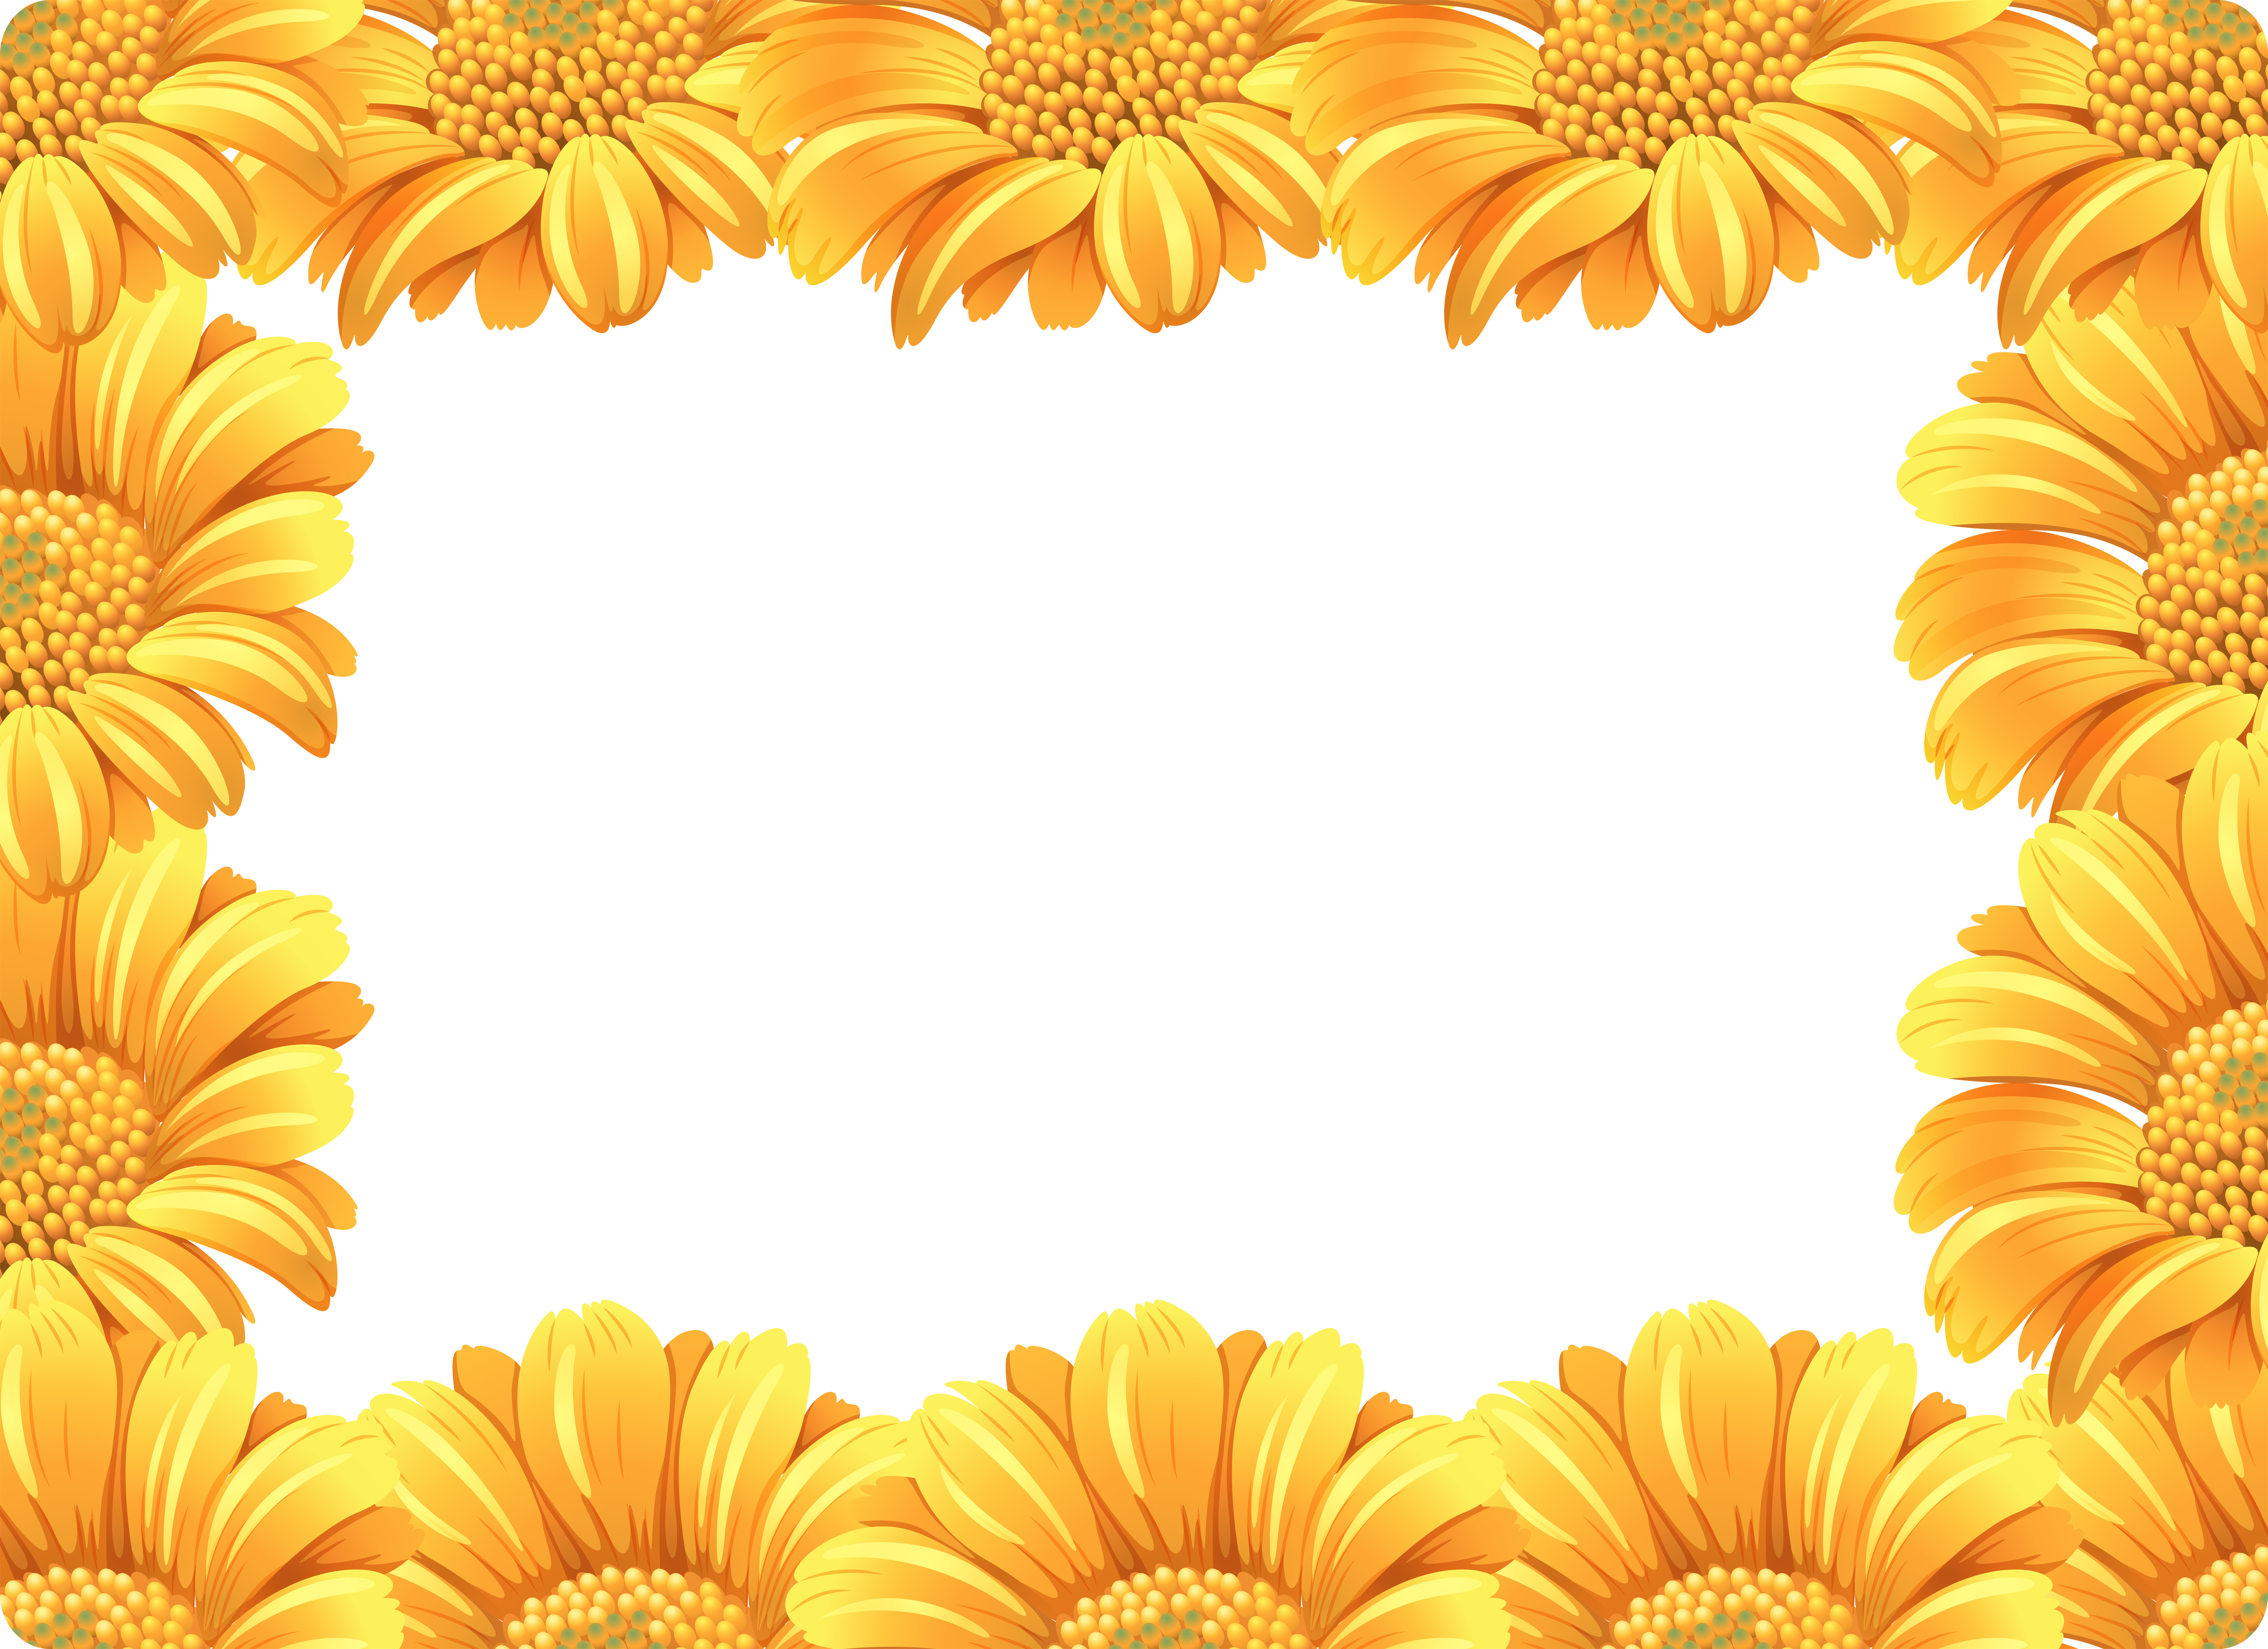 Yellow daisy flower border - Download Free Vectors ...